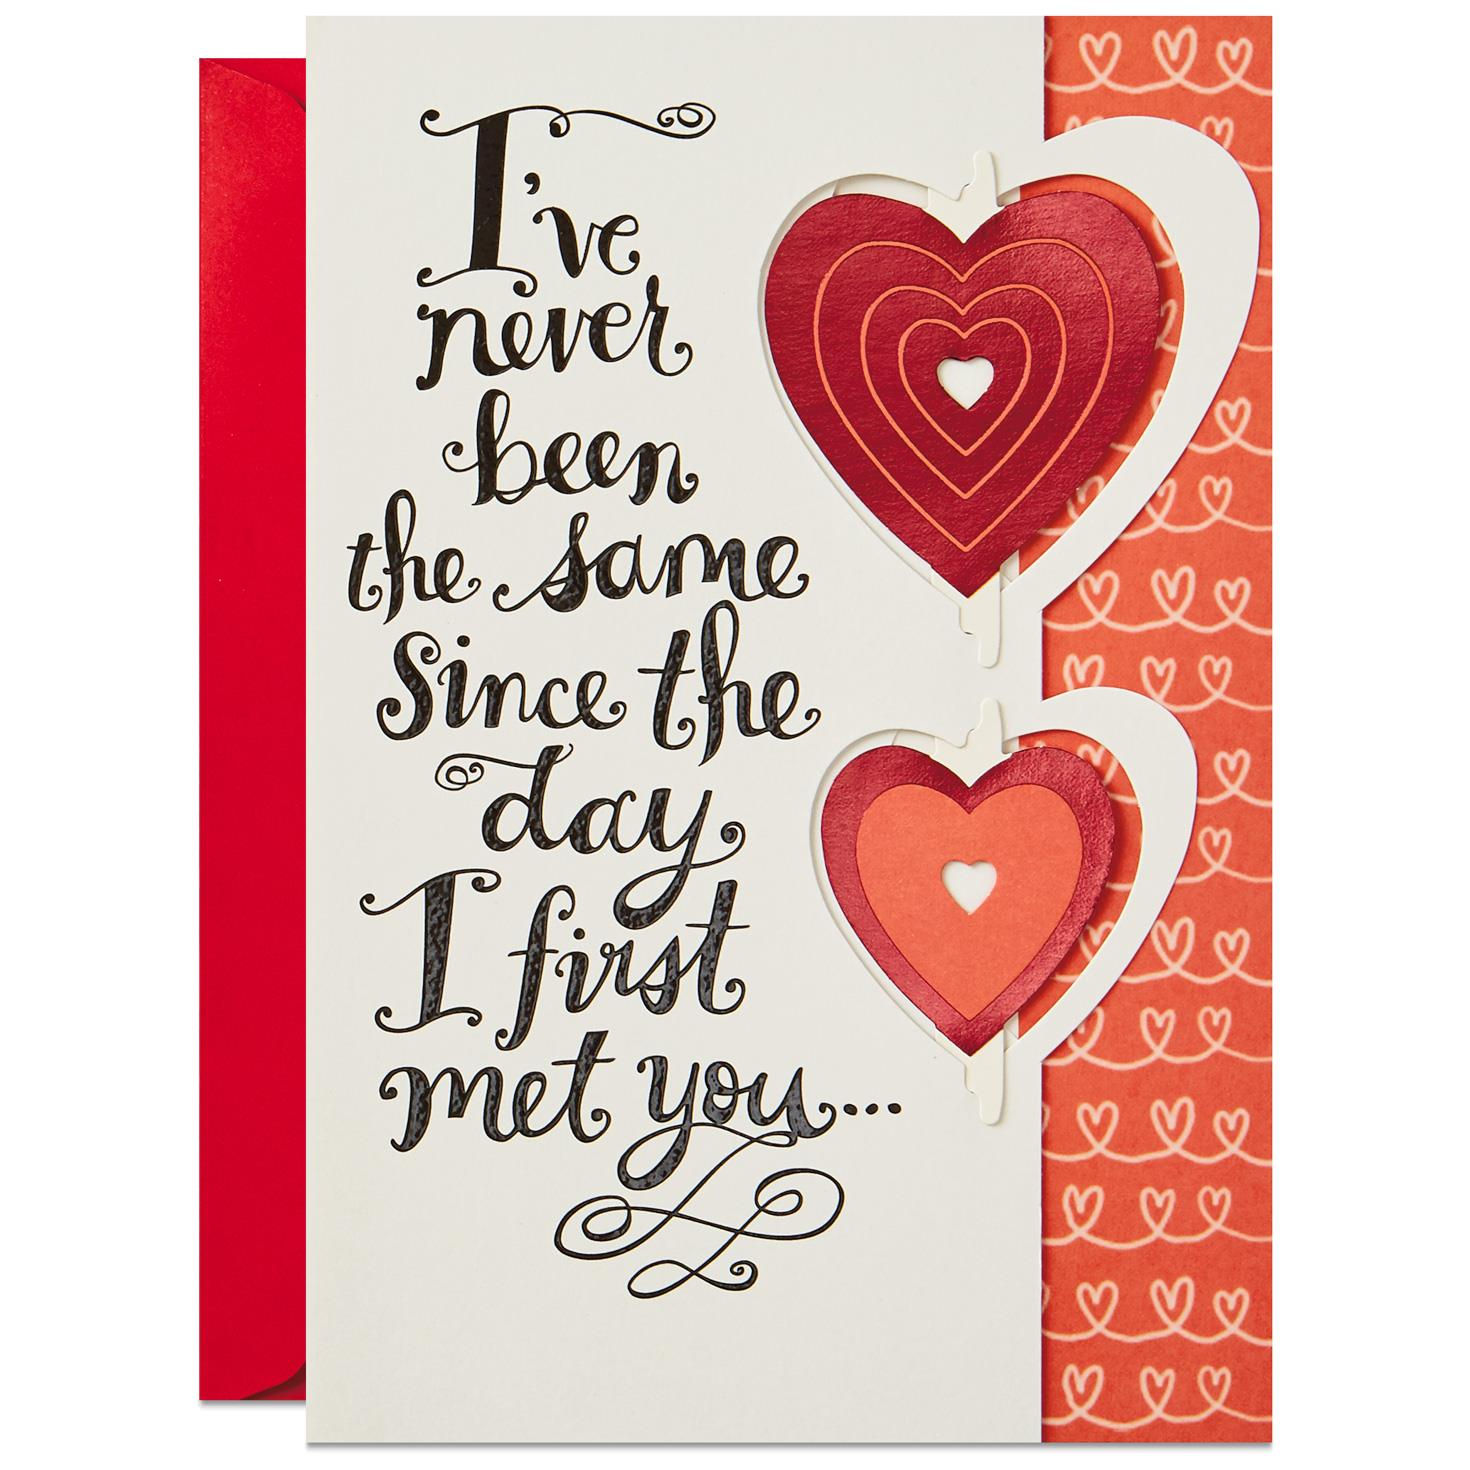 Since the first day we met romantic sweetest day card greeting since the first day we met romantic sweetest day card m4hsunfo